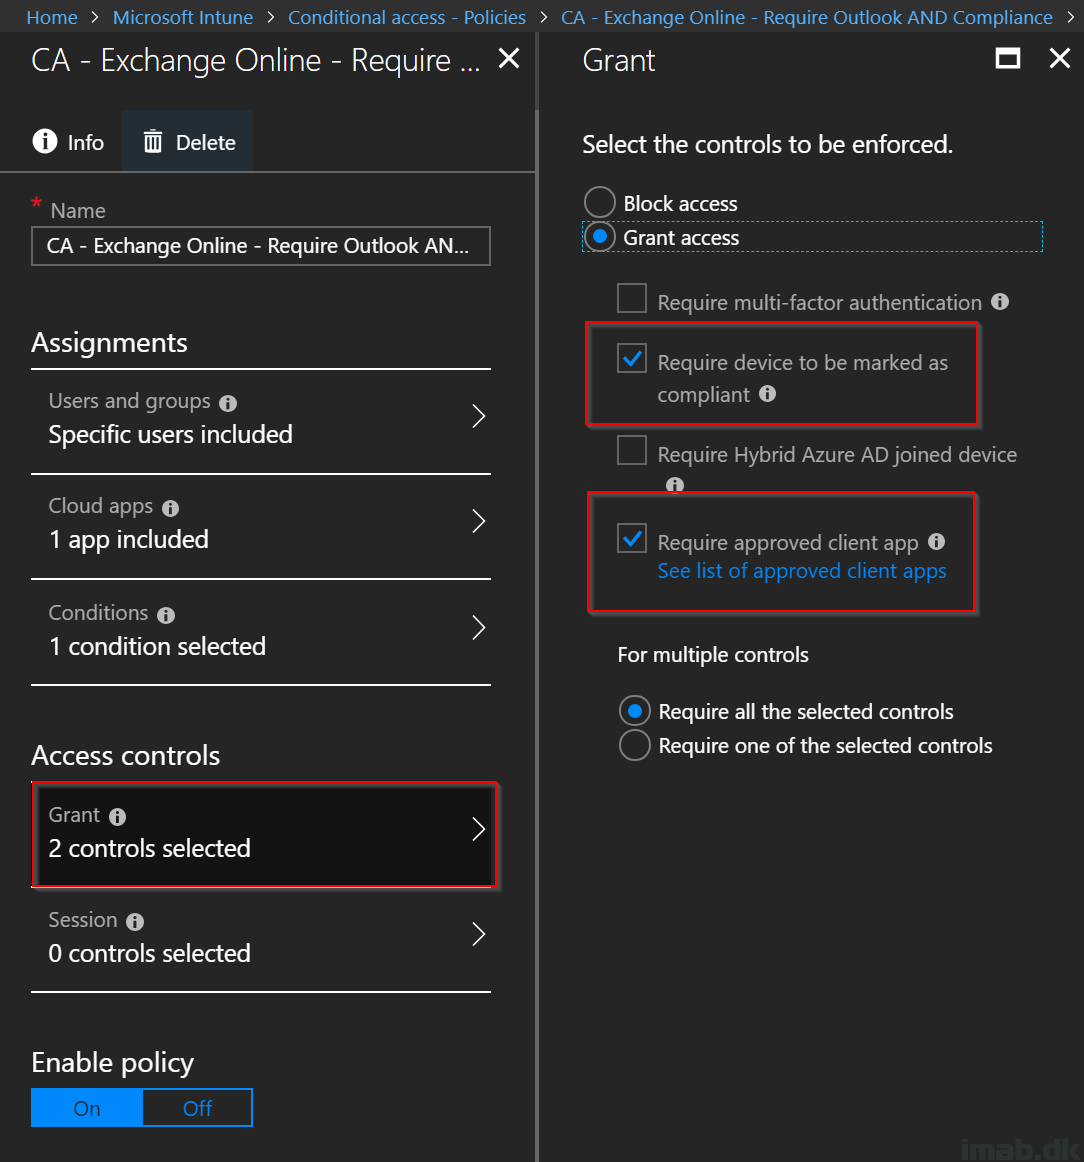 Conditional Access: Restrict access to Exchange Online and only